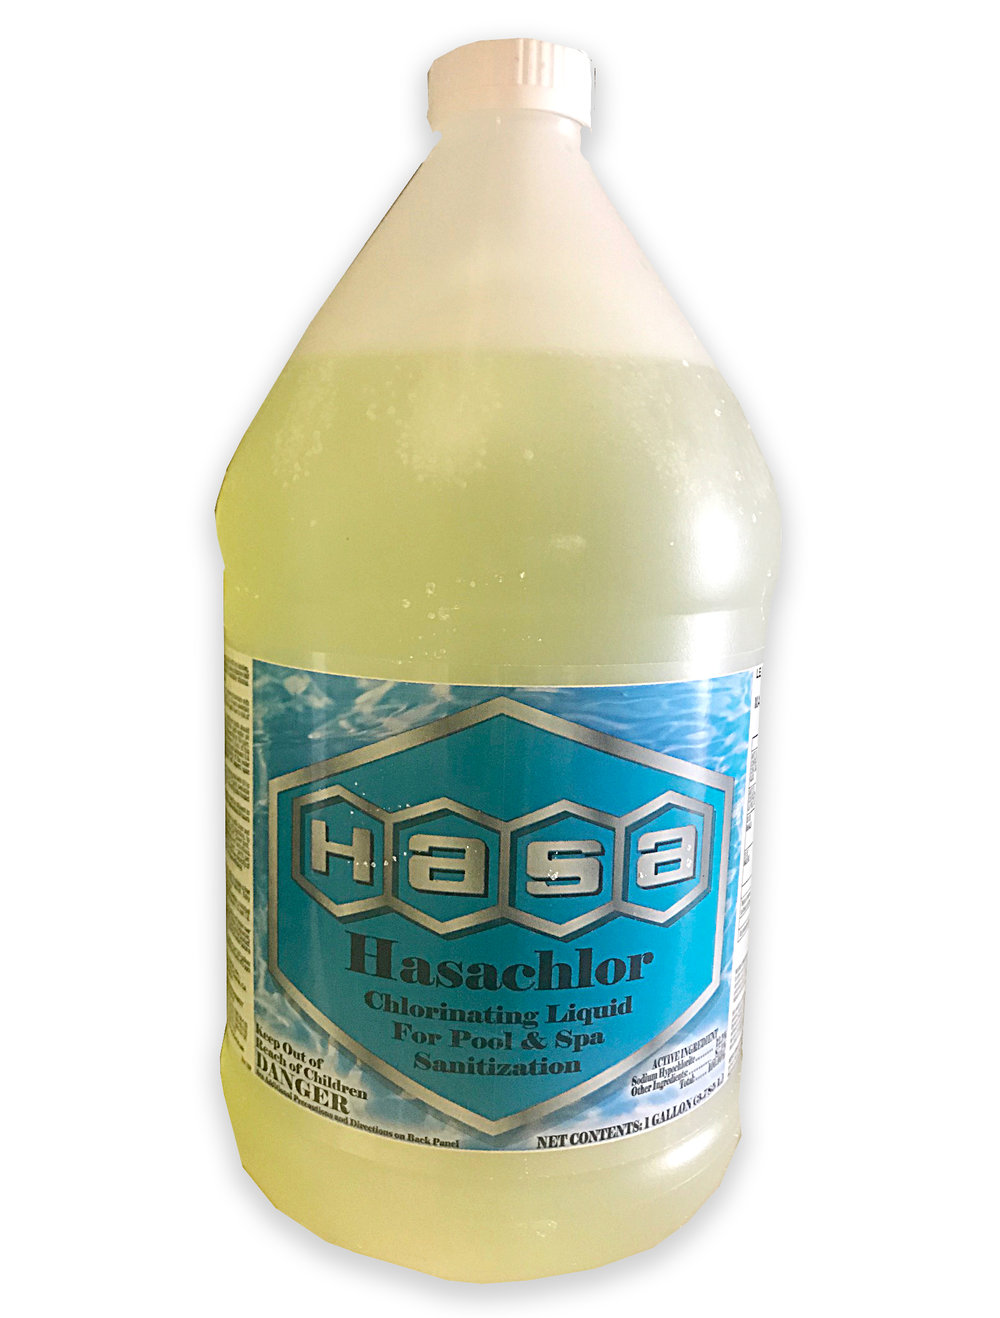 HASA SANI-CLOR / HASA CHLOR  A sodium hypochlorite solution, marketed for use in the treatment of water in swimming pools, spas, and hot tubs. It is the least expensive form of disinfecting swimming pool upon application destroying algae, bacteria, viruses, and other microorganisms.